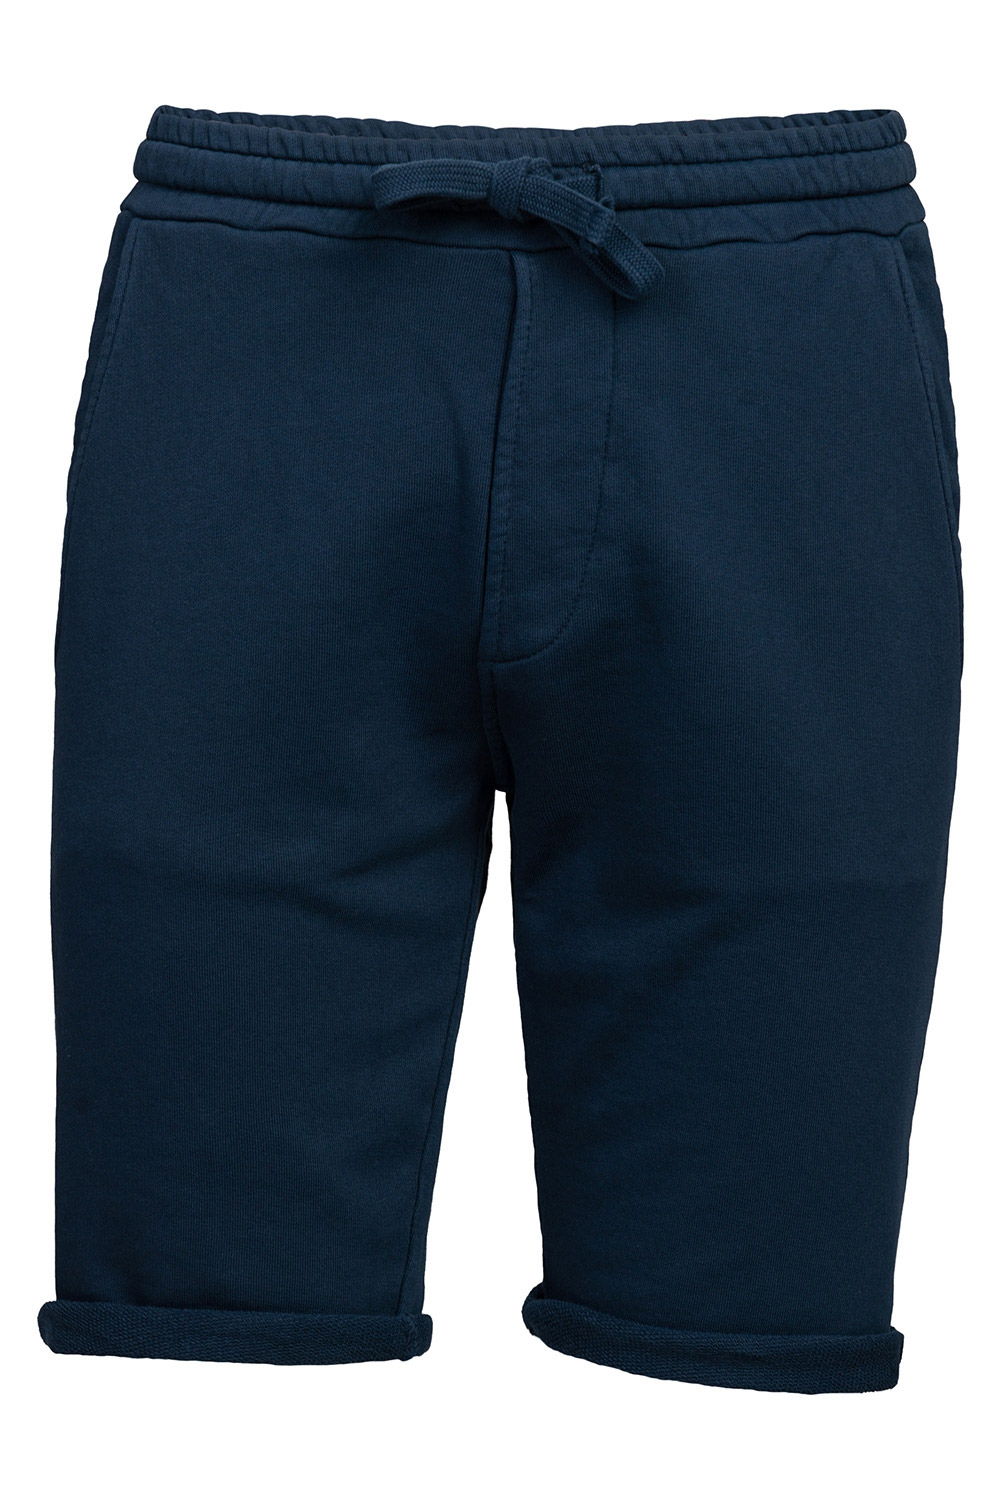 Slim body Navy Plain Trouser 0